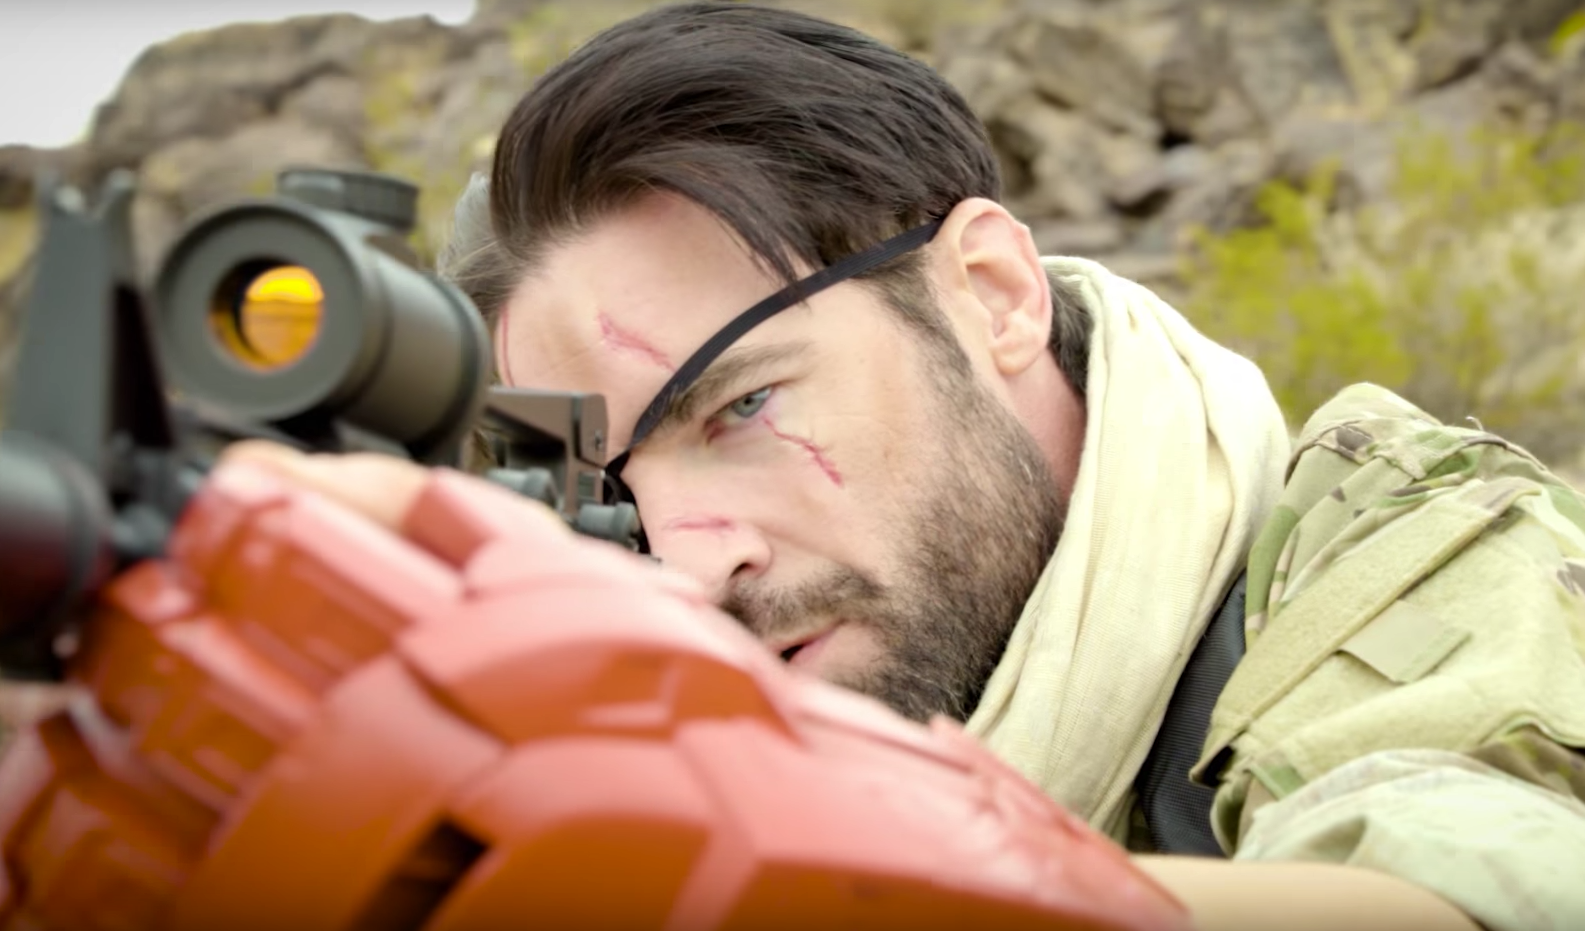 For A Metal Gear Porn Parody, These Special Effects Are OK